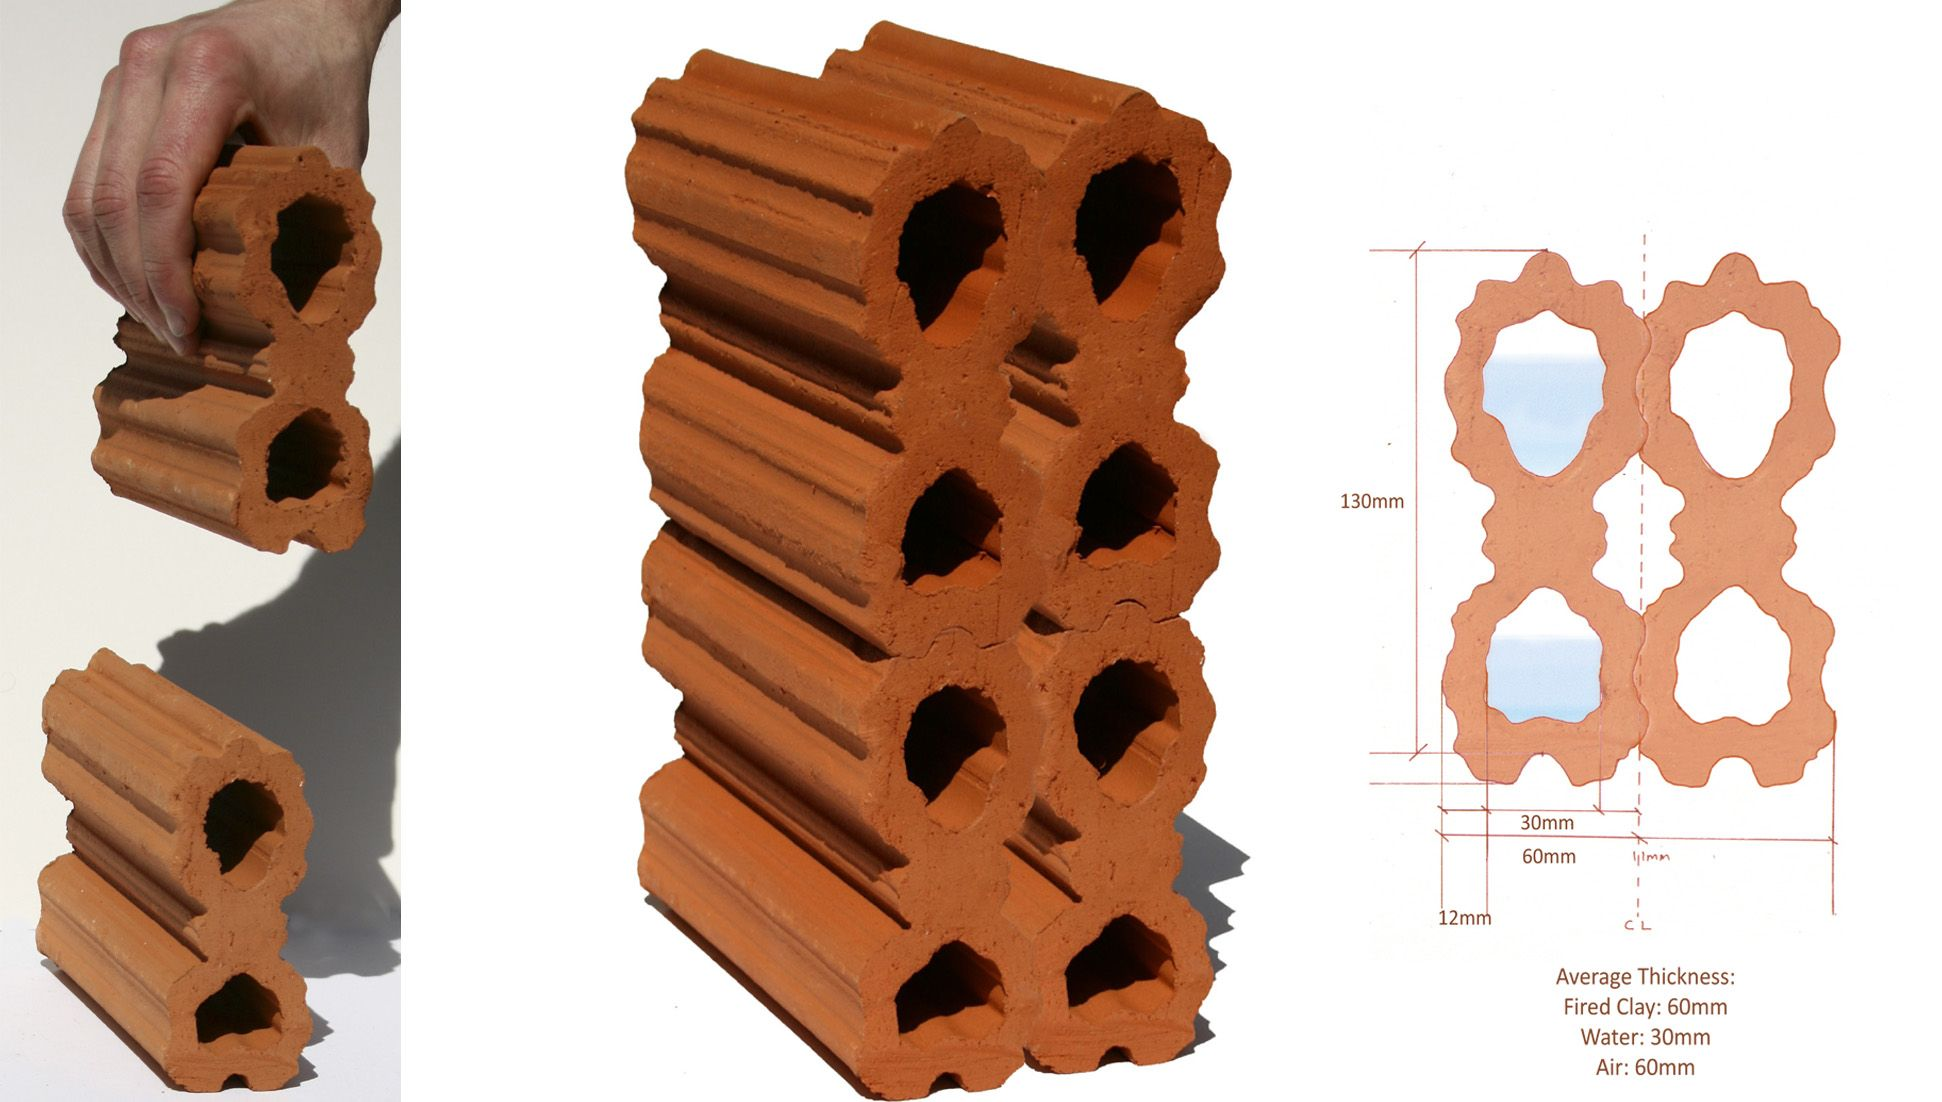 Prototype For An Interlocking Extruded Terracotta Wall With Water